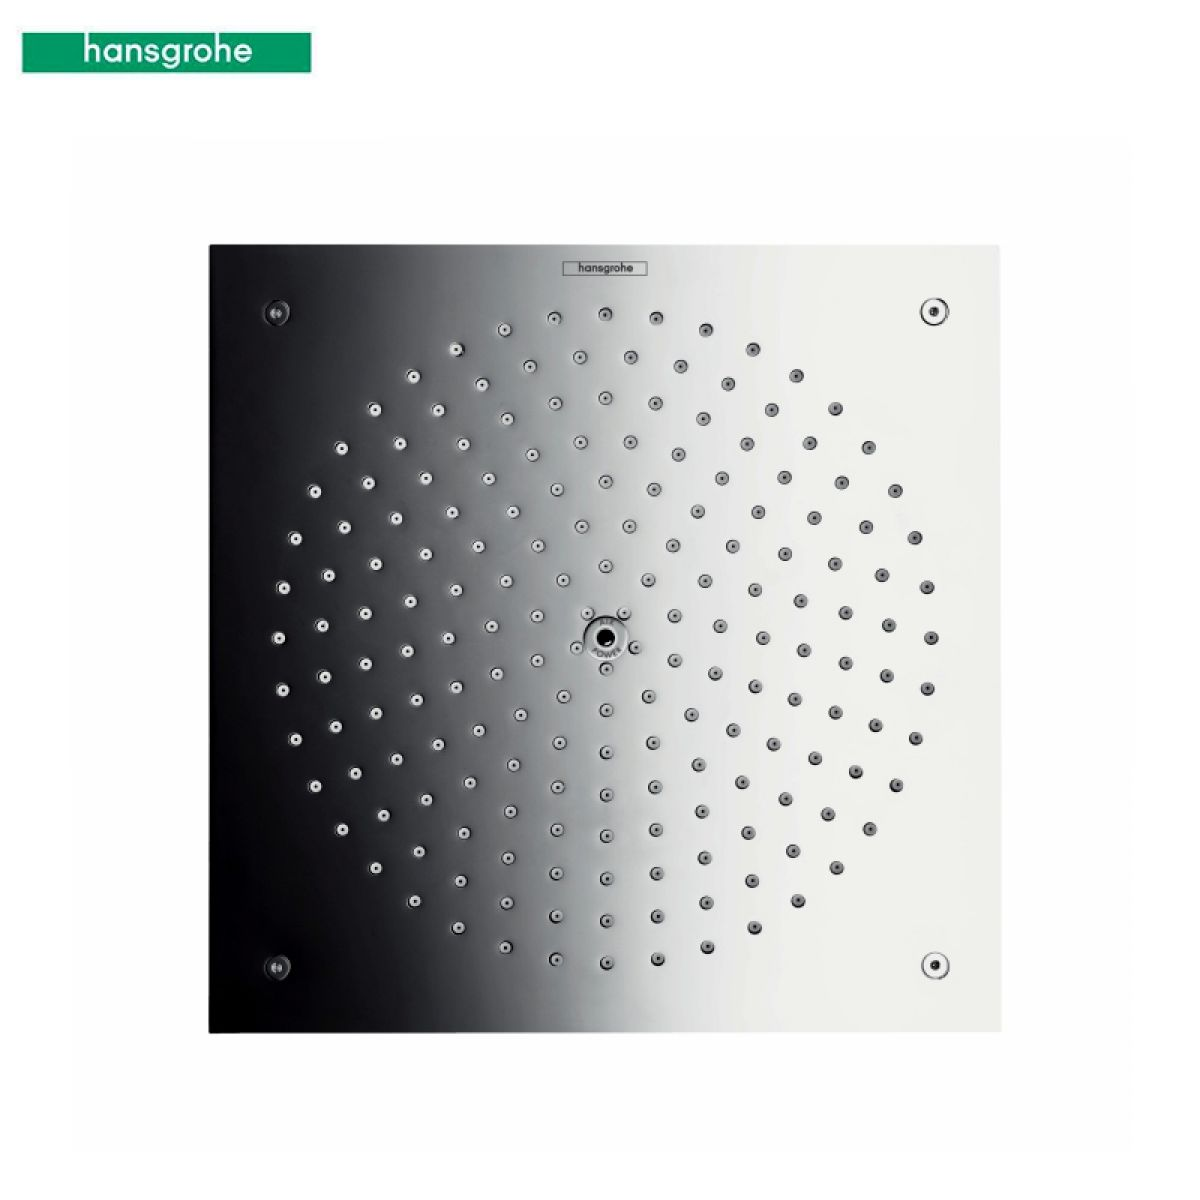 hansgrohe raindance air overhead shower 260 x 260mm uk bathrooms. Black Bedroom Furniture Sets. Home Design Ideas